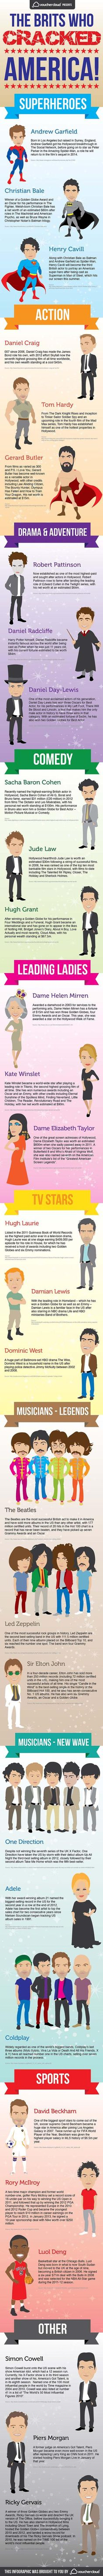 The Brits That Cracked America [Infographic] ~ Damn Cool Pictures Creative Economy, English Love, Moving To The Uk, Laugh A Lot, Everything Funny, The More You Know, Meeting New People, I Laughed, Need To Know